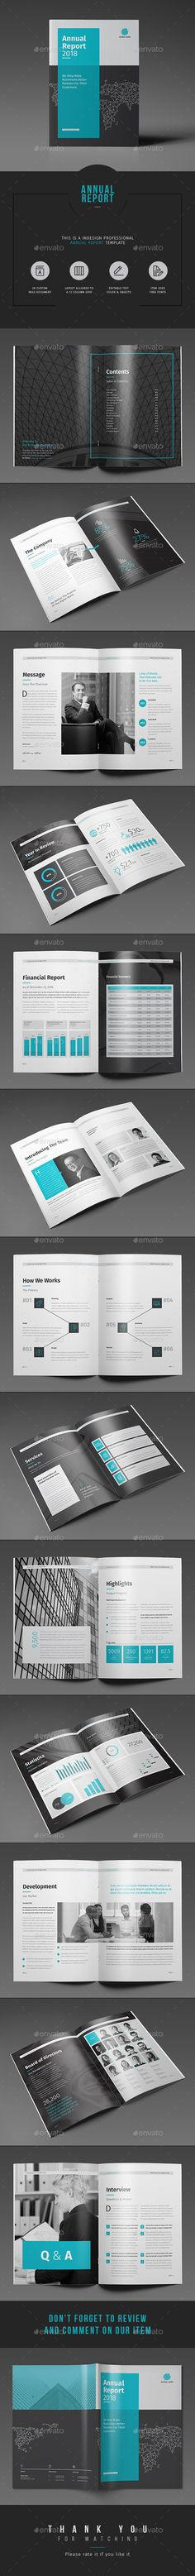 Clean And Simple Catalogue Template Catalog design, Catalog and - free annual report templates